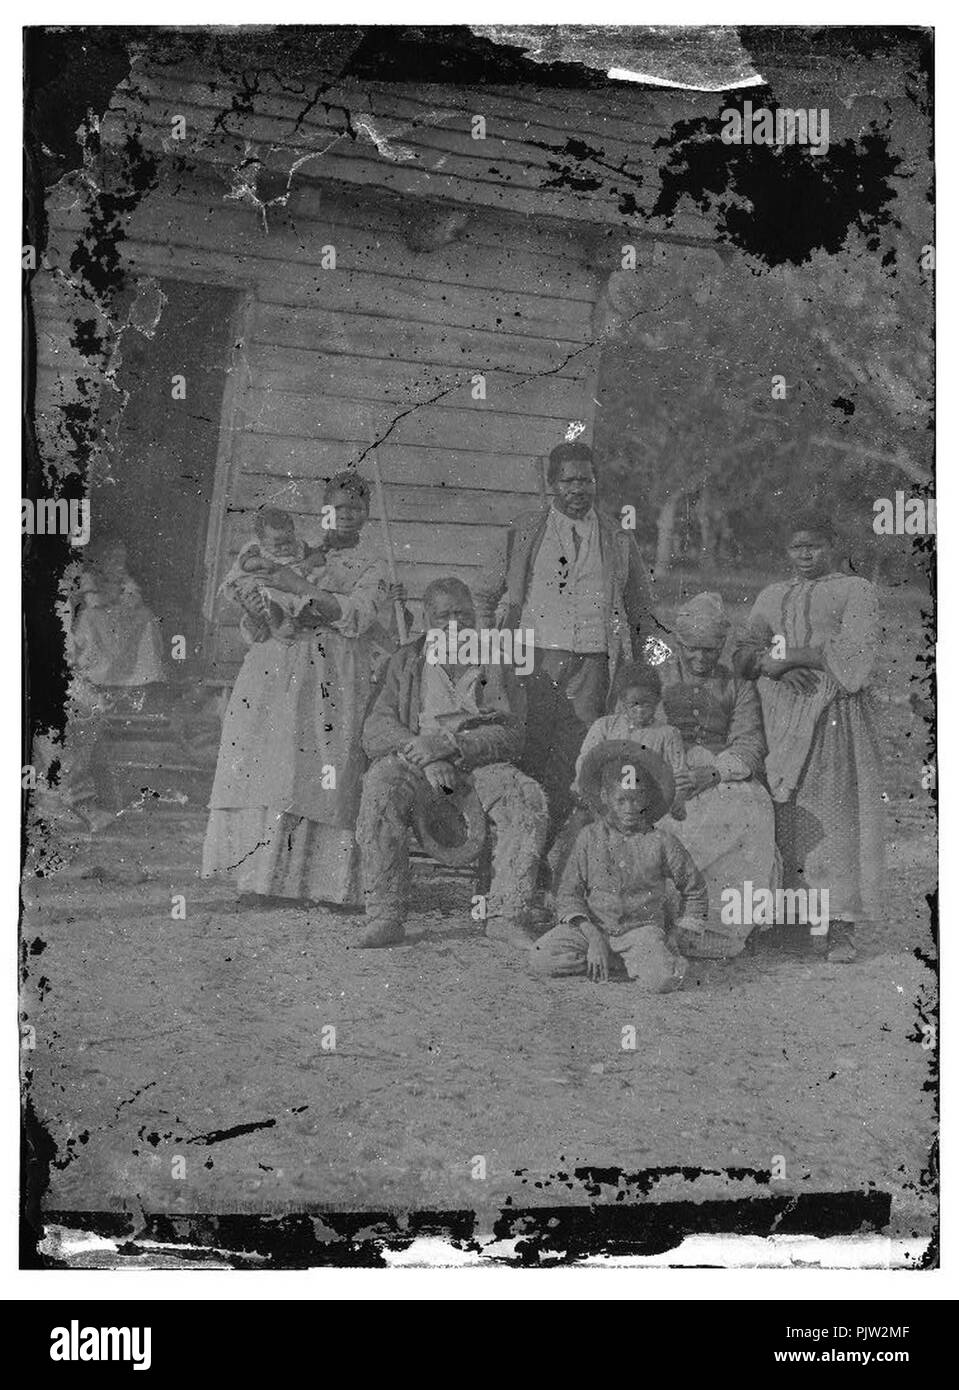 Beaufort, South Carolina. Negro family representing several generations. All born on the plantation of J.J. Smith - Stock Image